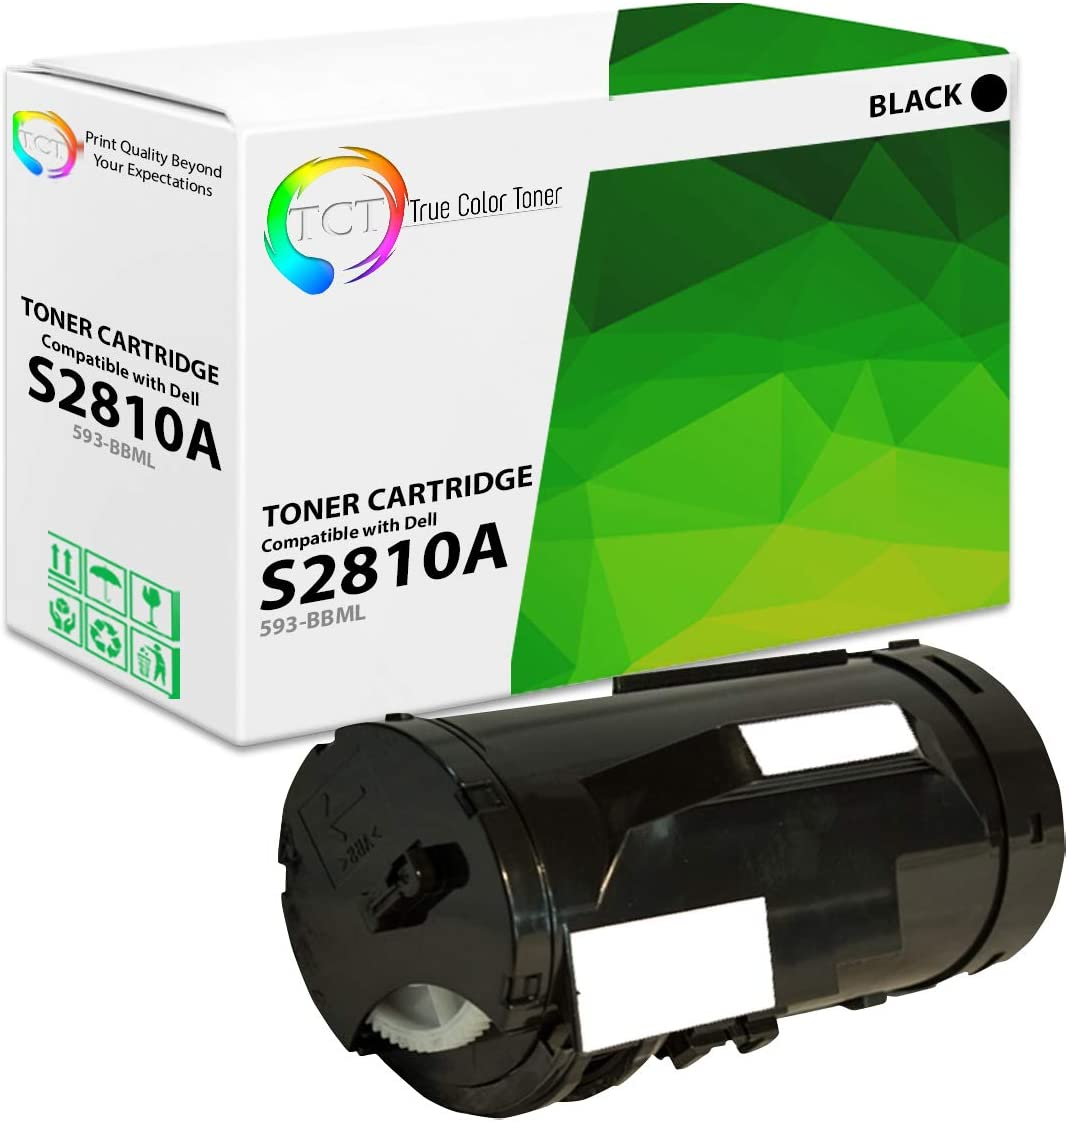 TCT Premium Compatible Toner Cartridge Replacement for Dell 593-BBML Black Works with Dell S2810DN Printers (3,000 Pages)